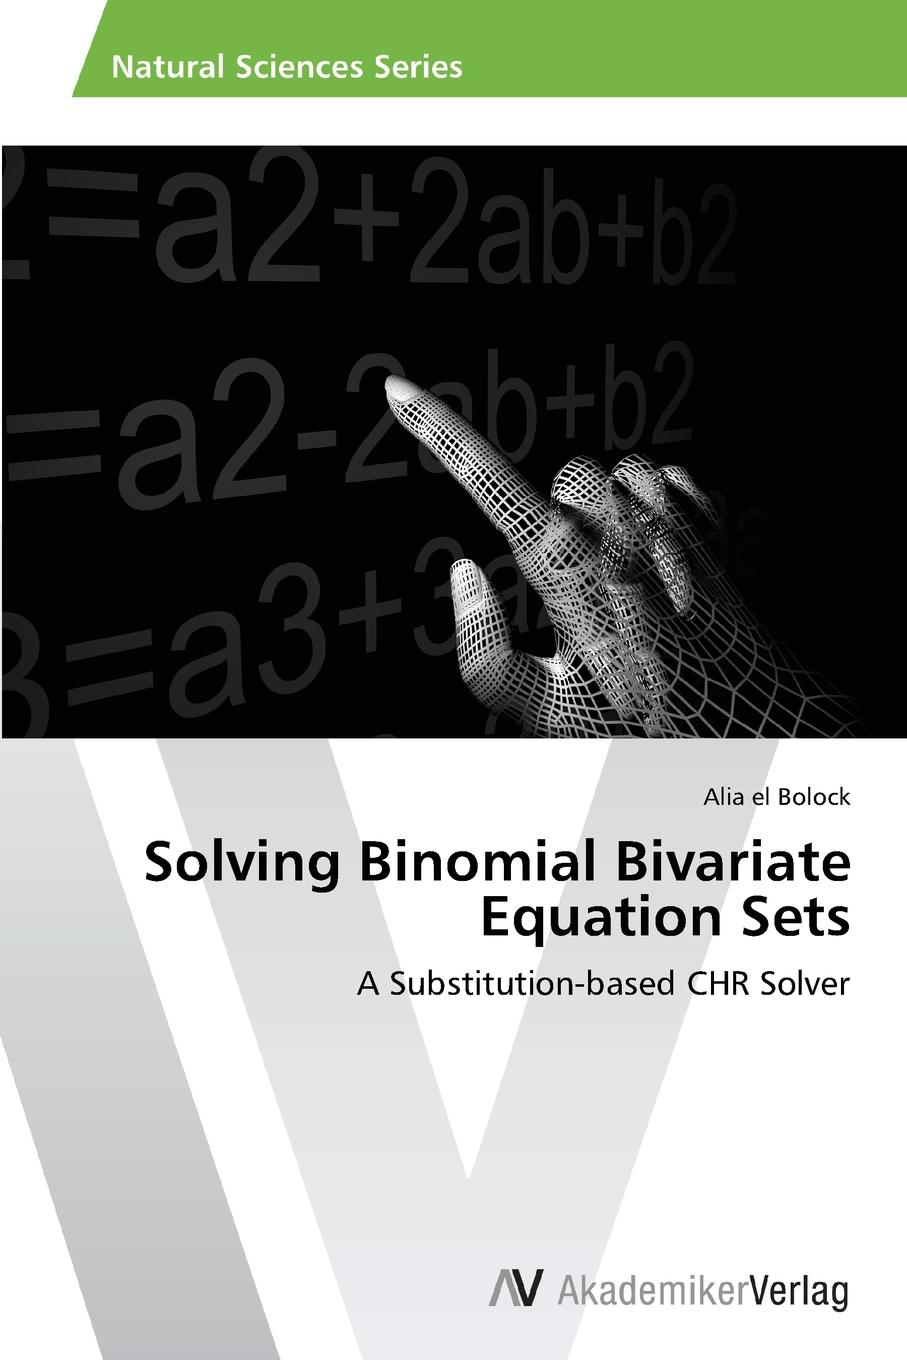 el Bolock Alia Solving Binomial Bivariate Equation Sets